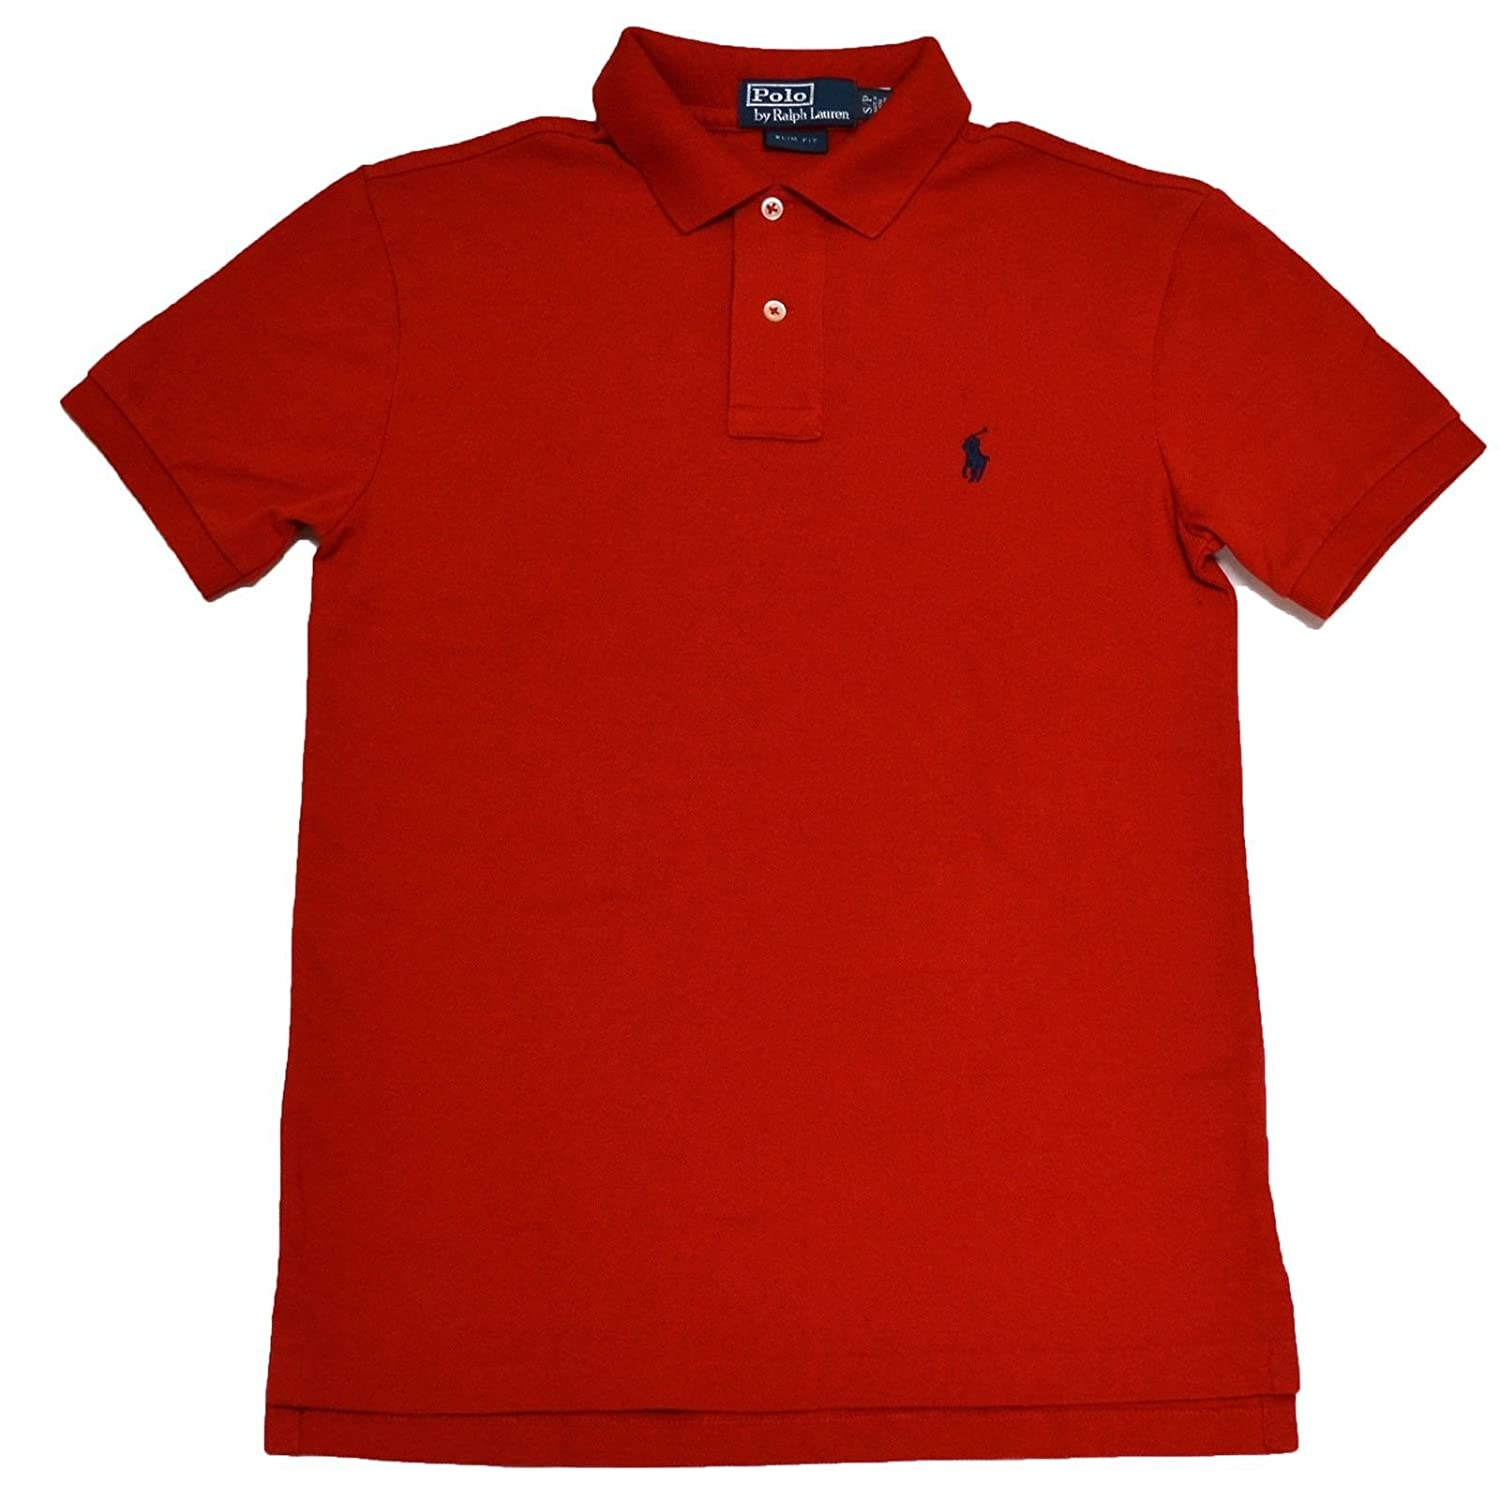 Polo Ralph Lauren Slim Fit Pique Mesh Polo Shirt (RL Red 7ab9c1236